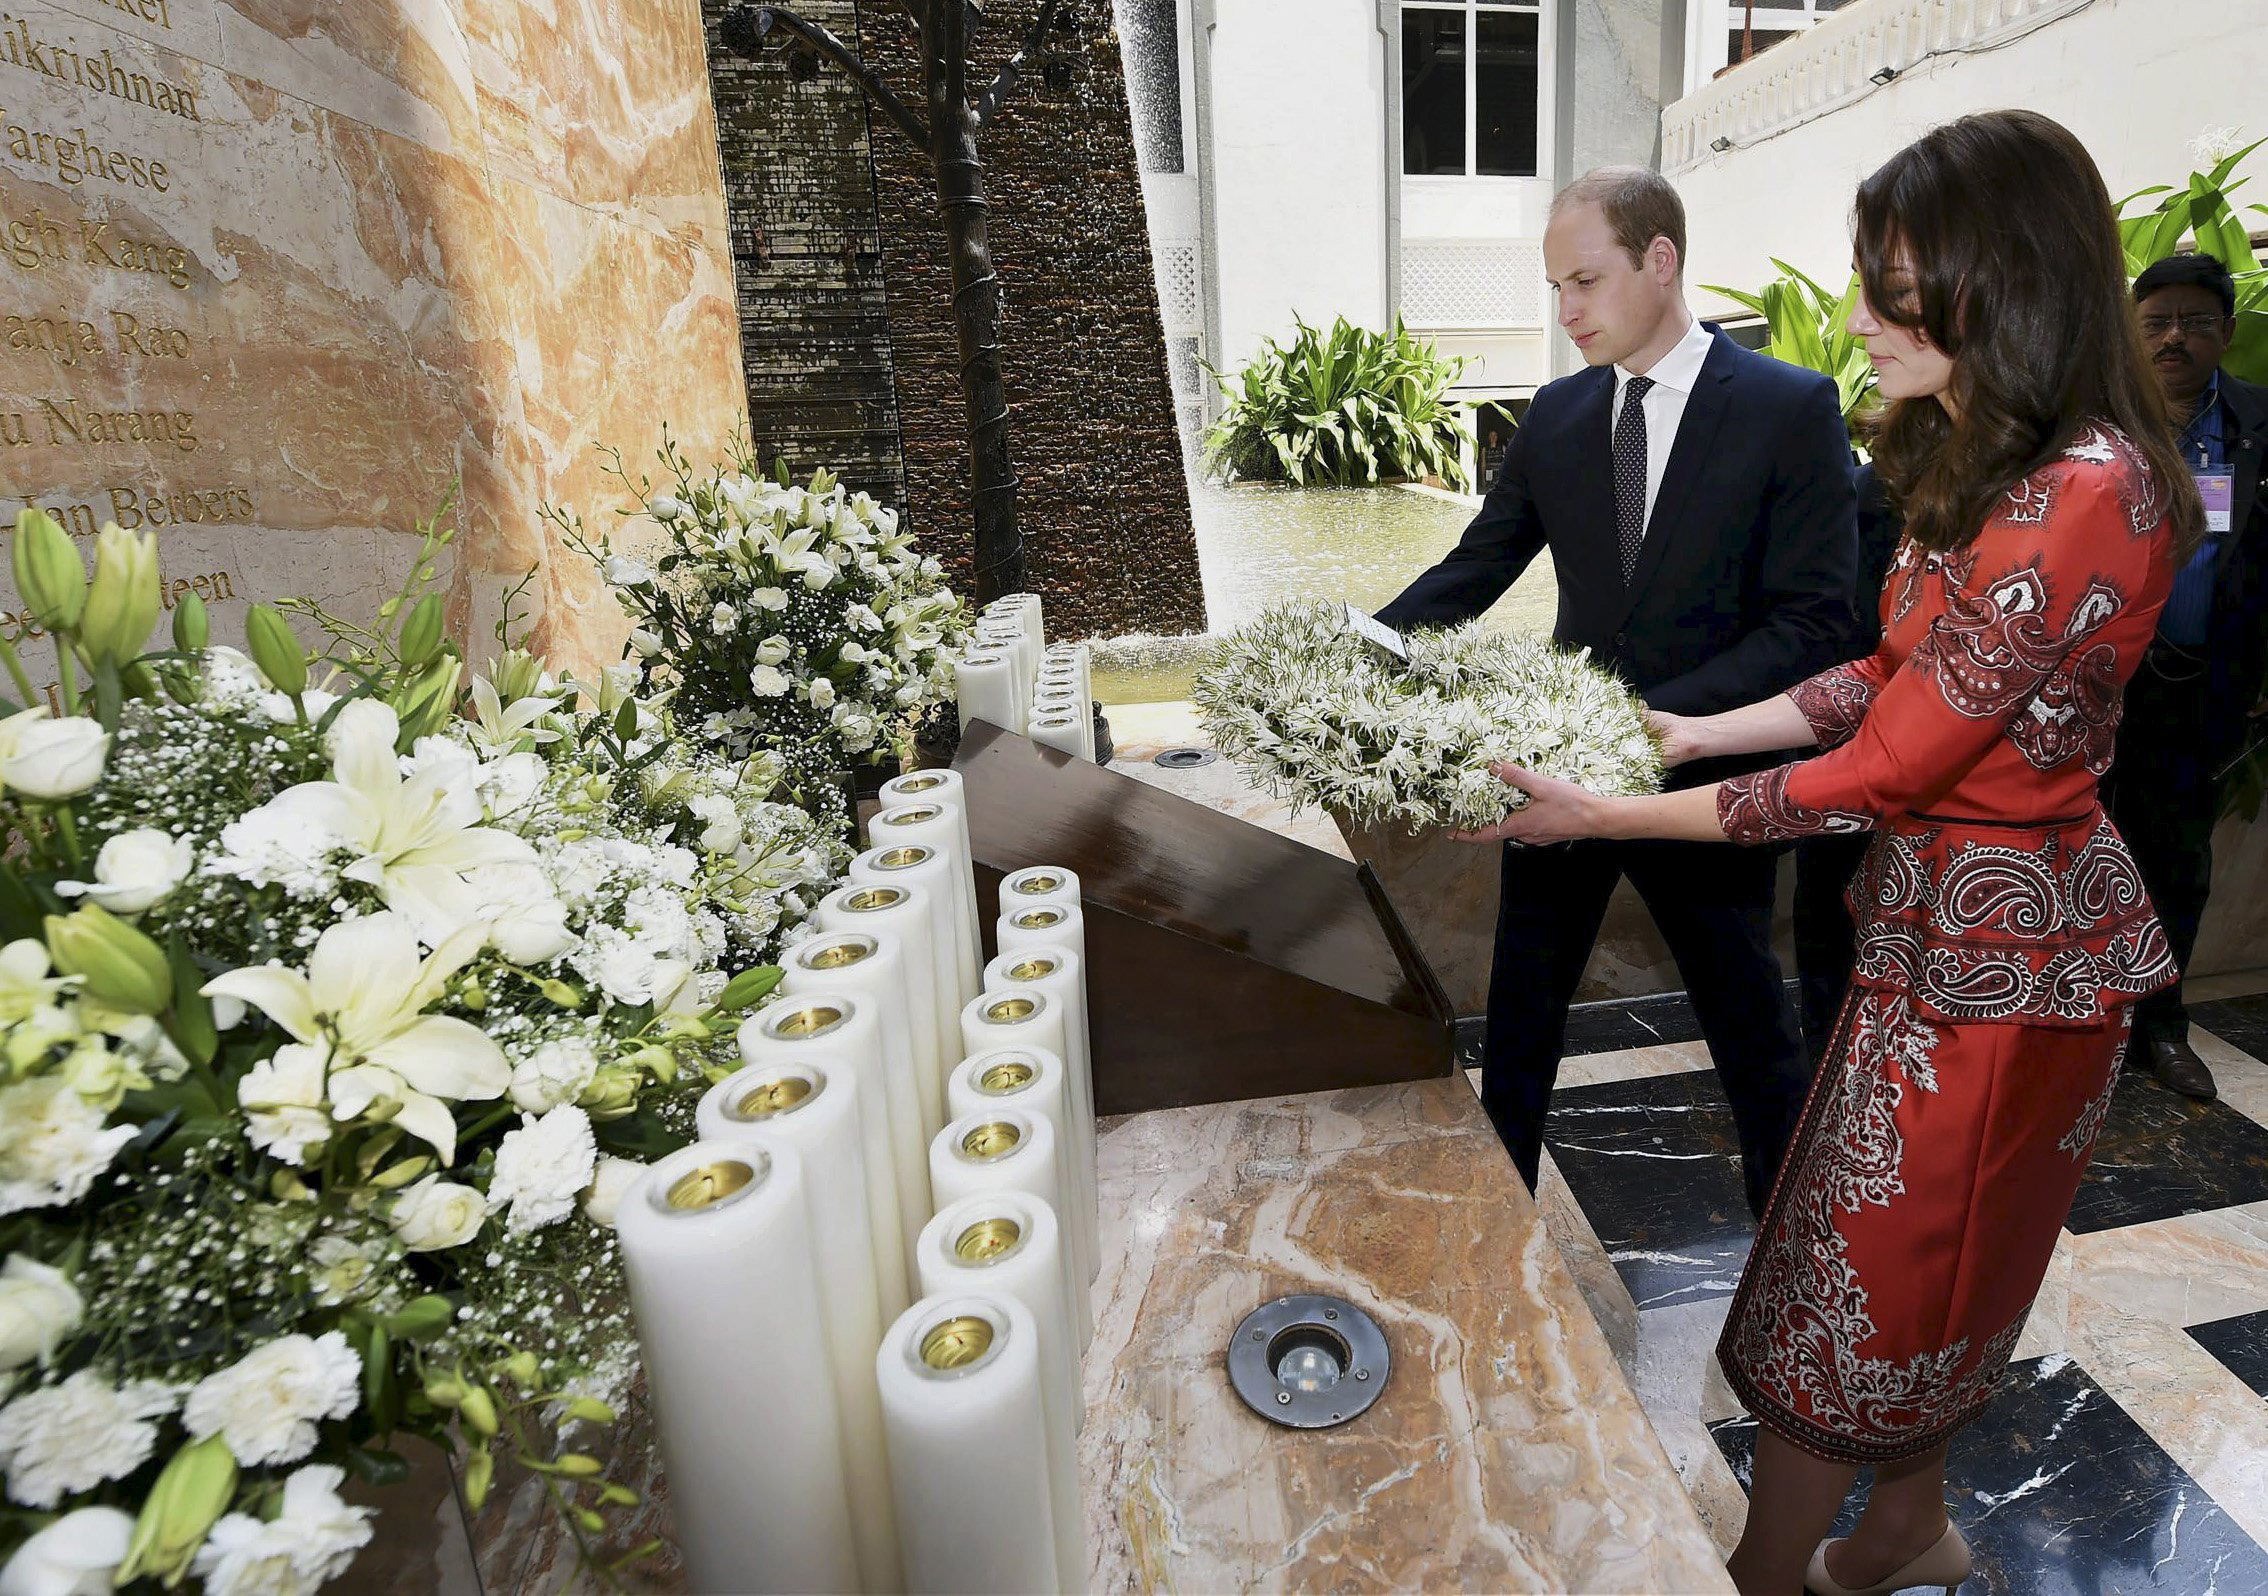 Prince William and Catherine hold a wreath as they pay their respects at the 26/11 memorial at the Taj Mahal Palace hotel, one of the sites of the 2008 attacks, in Mumbai, India, on April 10, 2016.